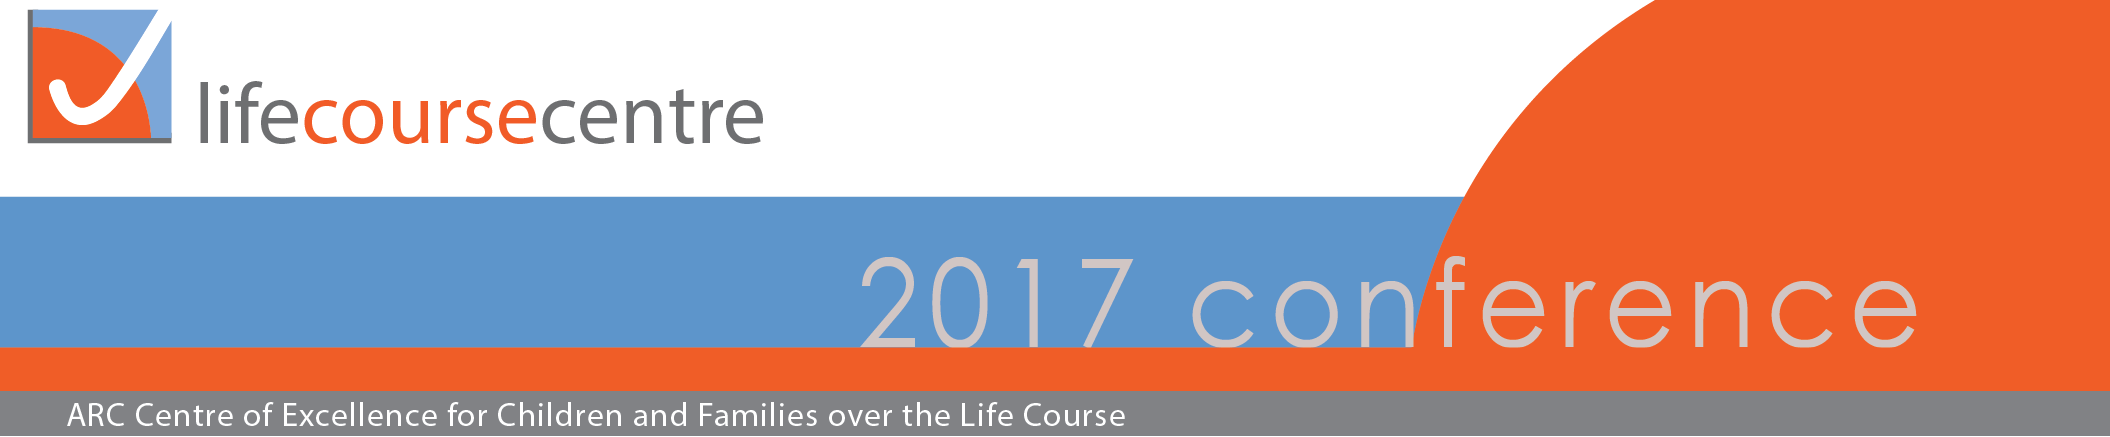 lcc_conference_header_2017_tempv2